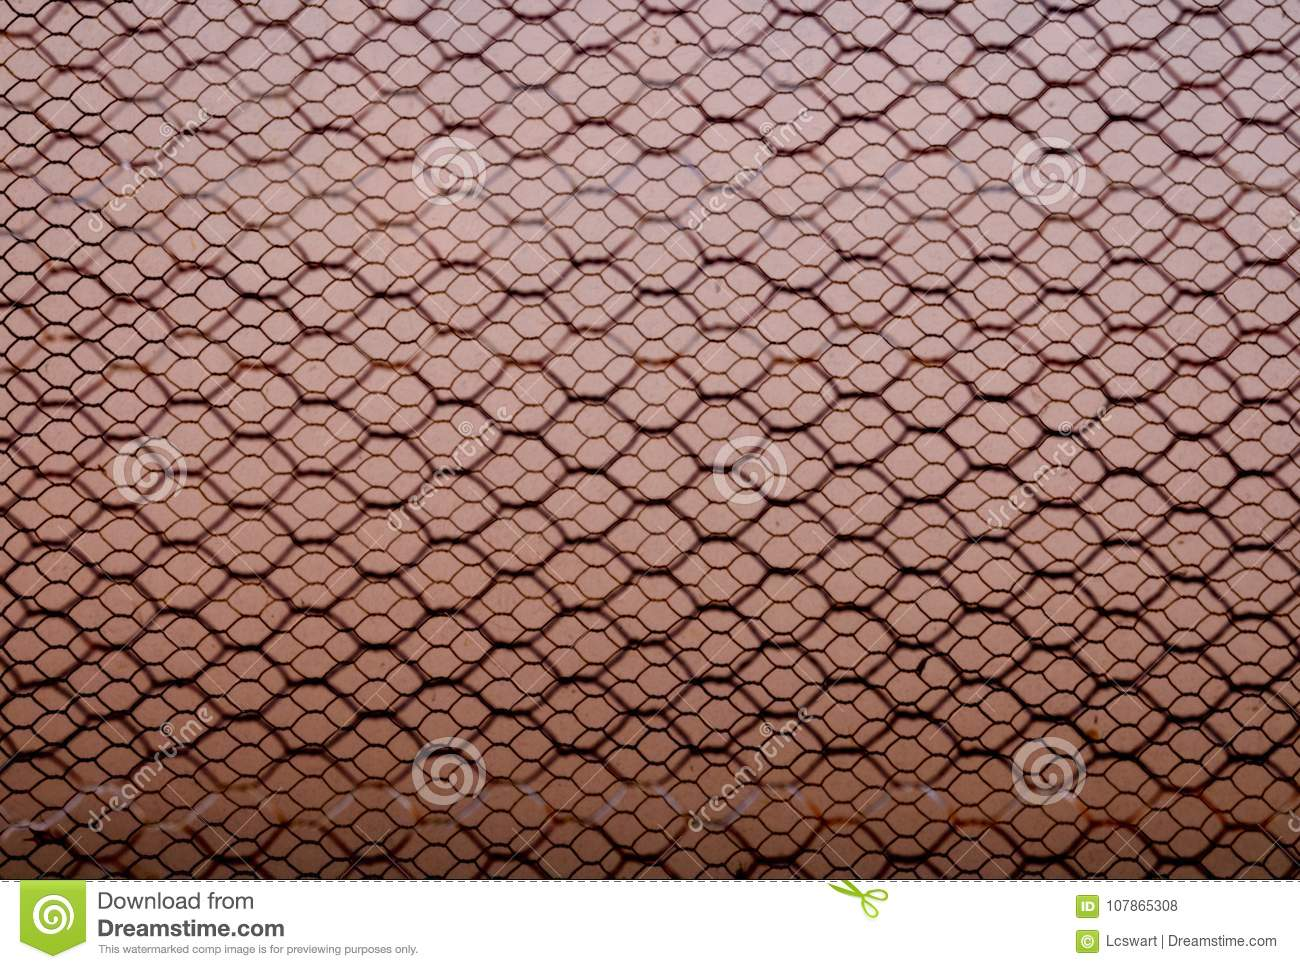 Rusty Double Layer Hexagonal Wire Mesh Background